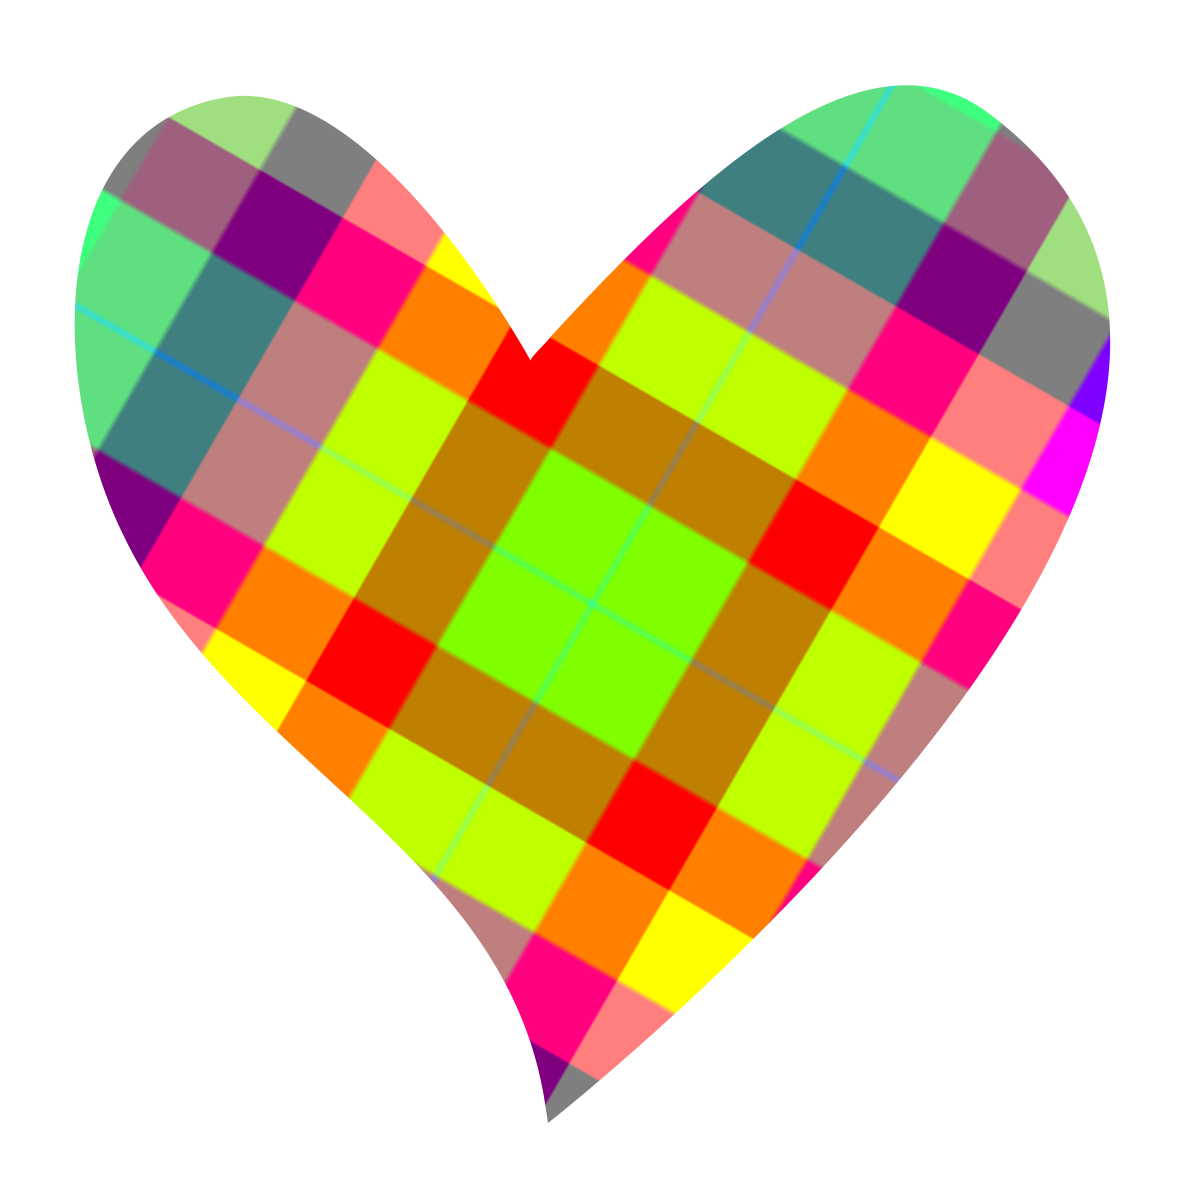 Colouful clipart Cookie Jar shape Colorful heart